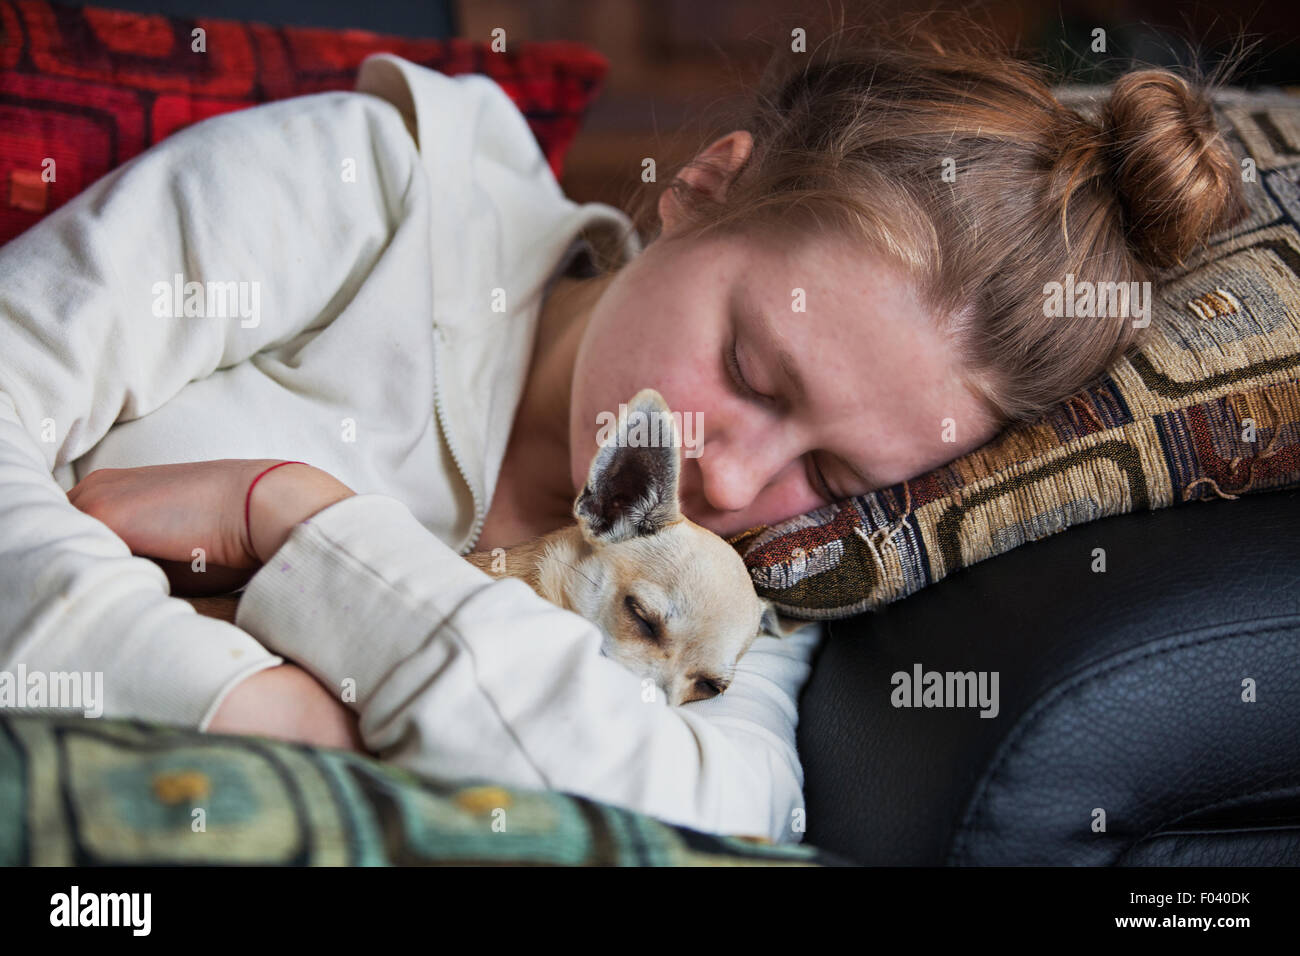 Sleeping girl with a little dog - Stock Image